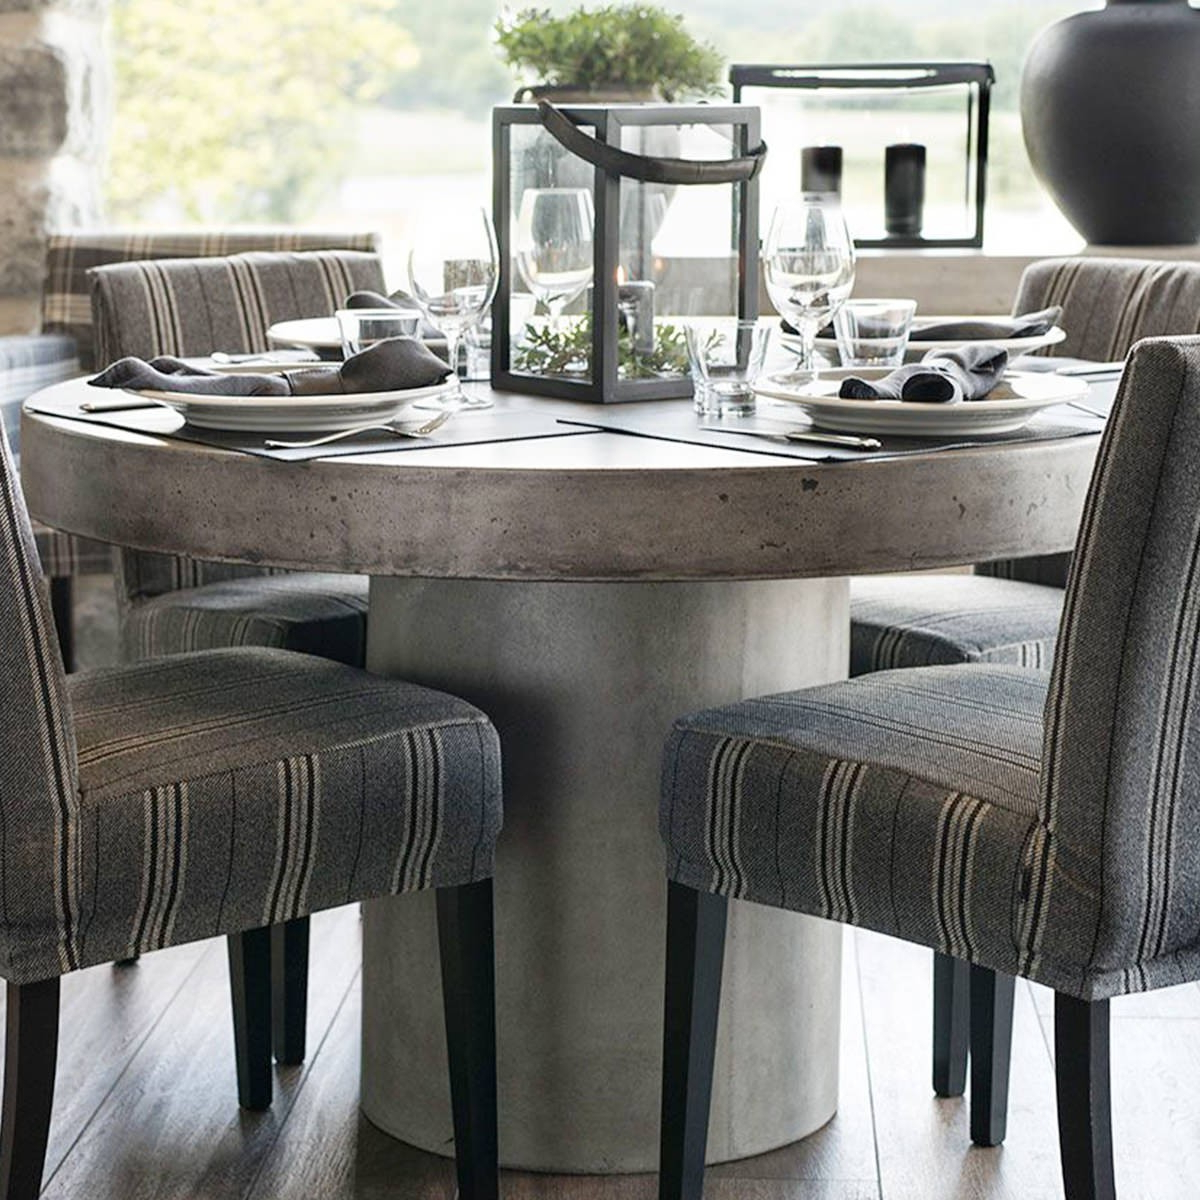 Morris Round Dining Tables Intended For 2018 Artwood Round Dining Table Regent Light Concrete (Gallery 25 of 30)